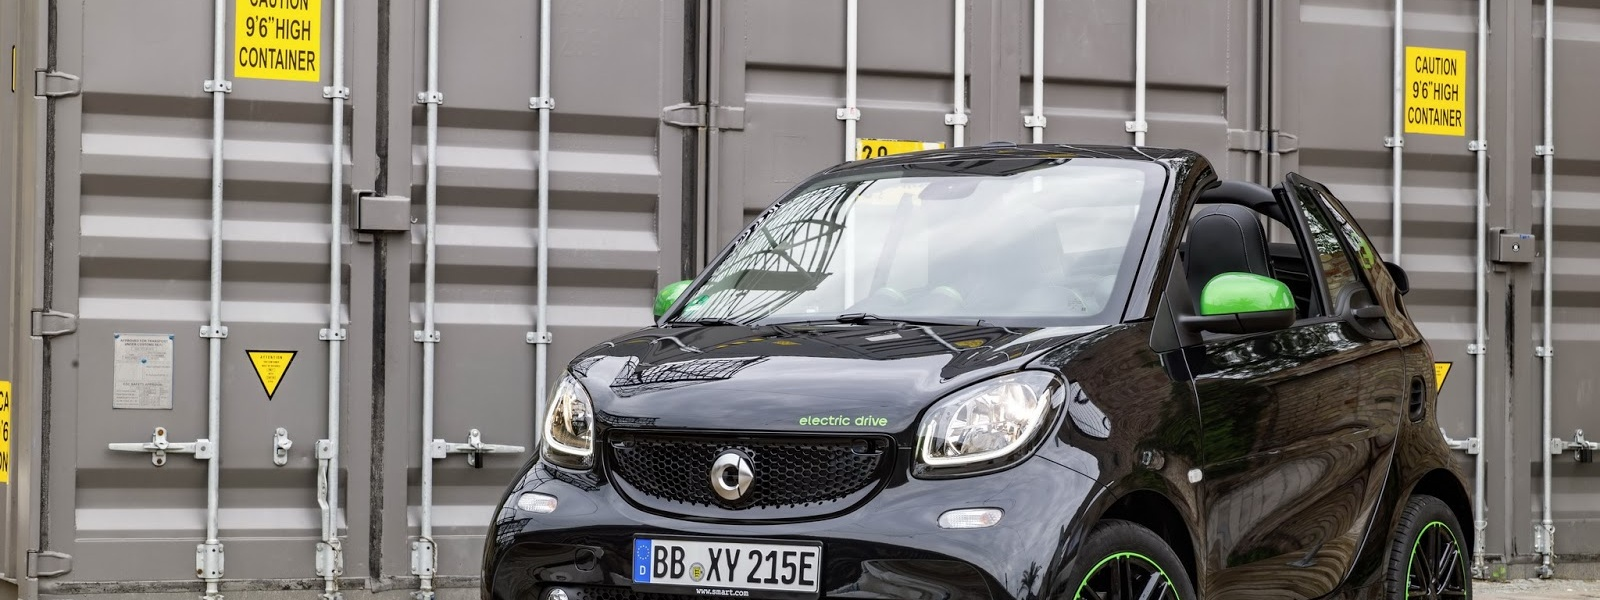 smart-fortwo-electric-drive-2.jpg